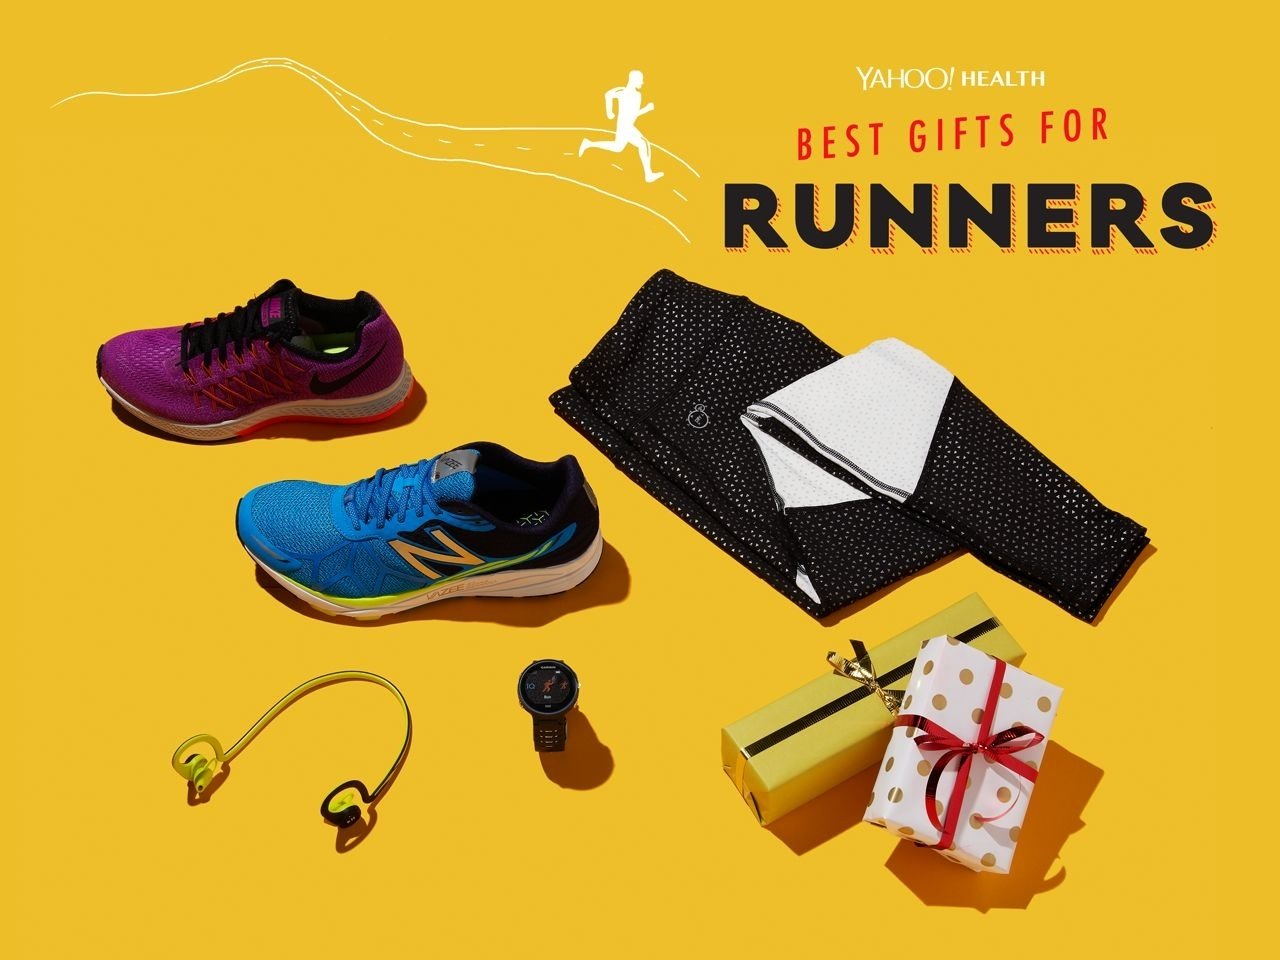 10 Fabulous Gift Ideas For Runners Men the best gifts for runners 2020